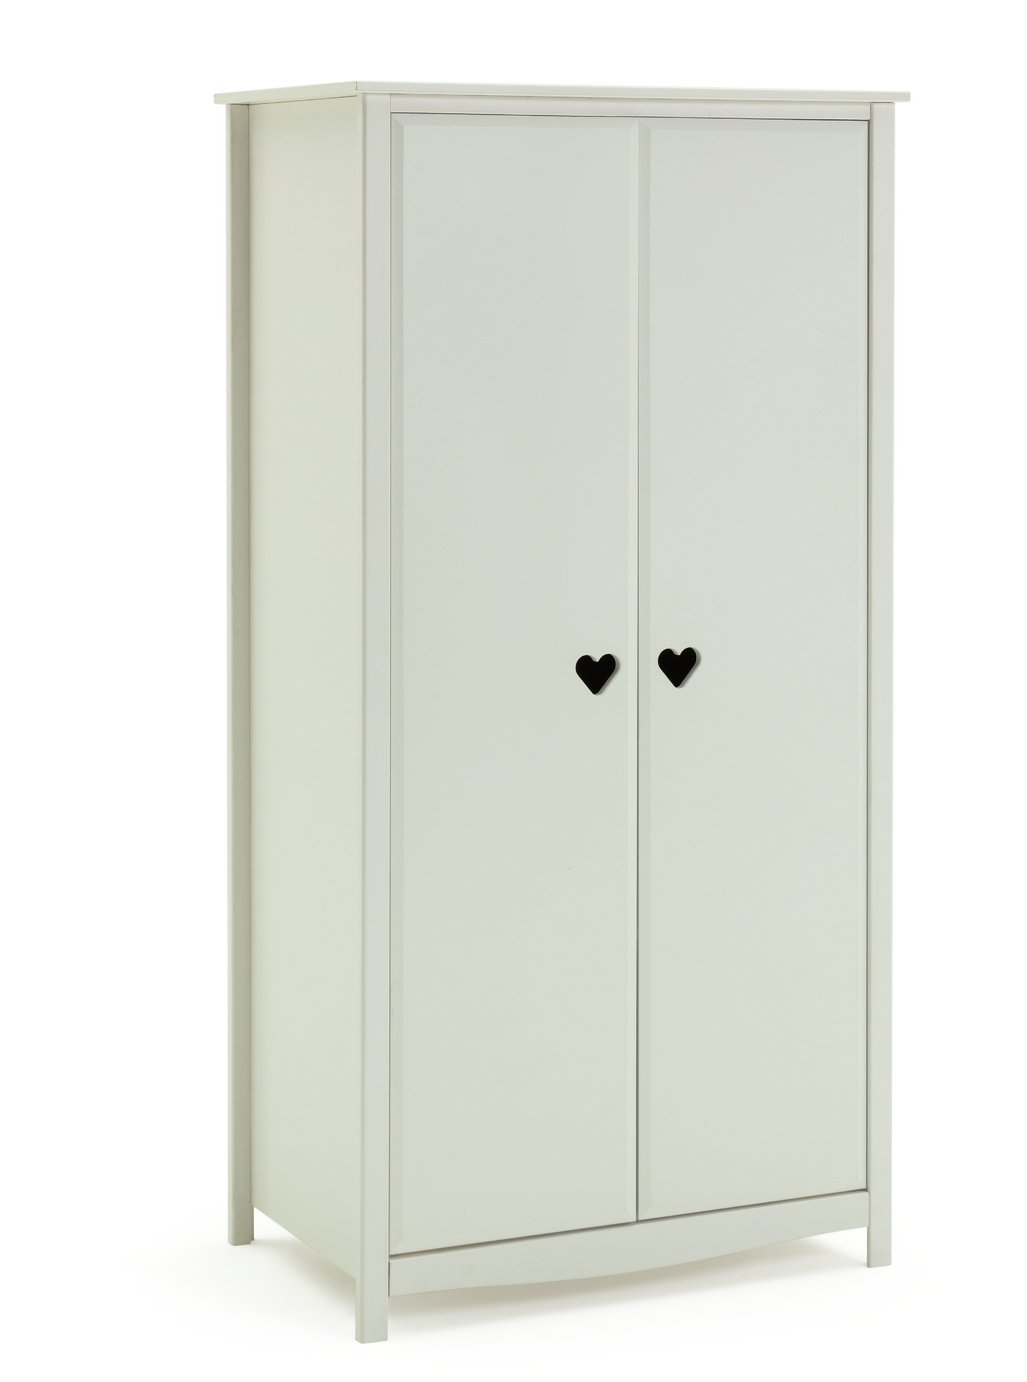 Image of Collection Mia Wardrobe - White